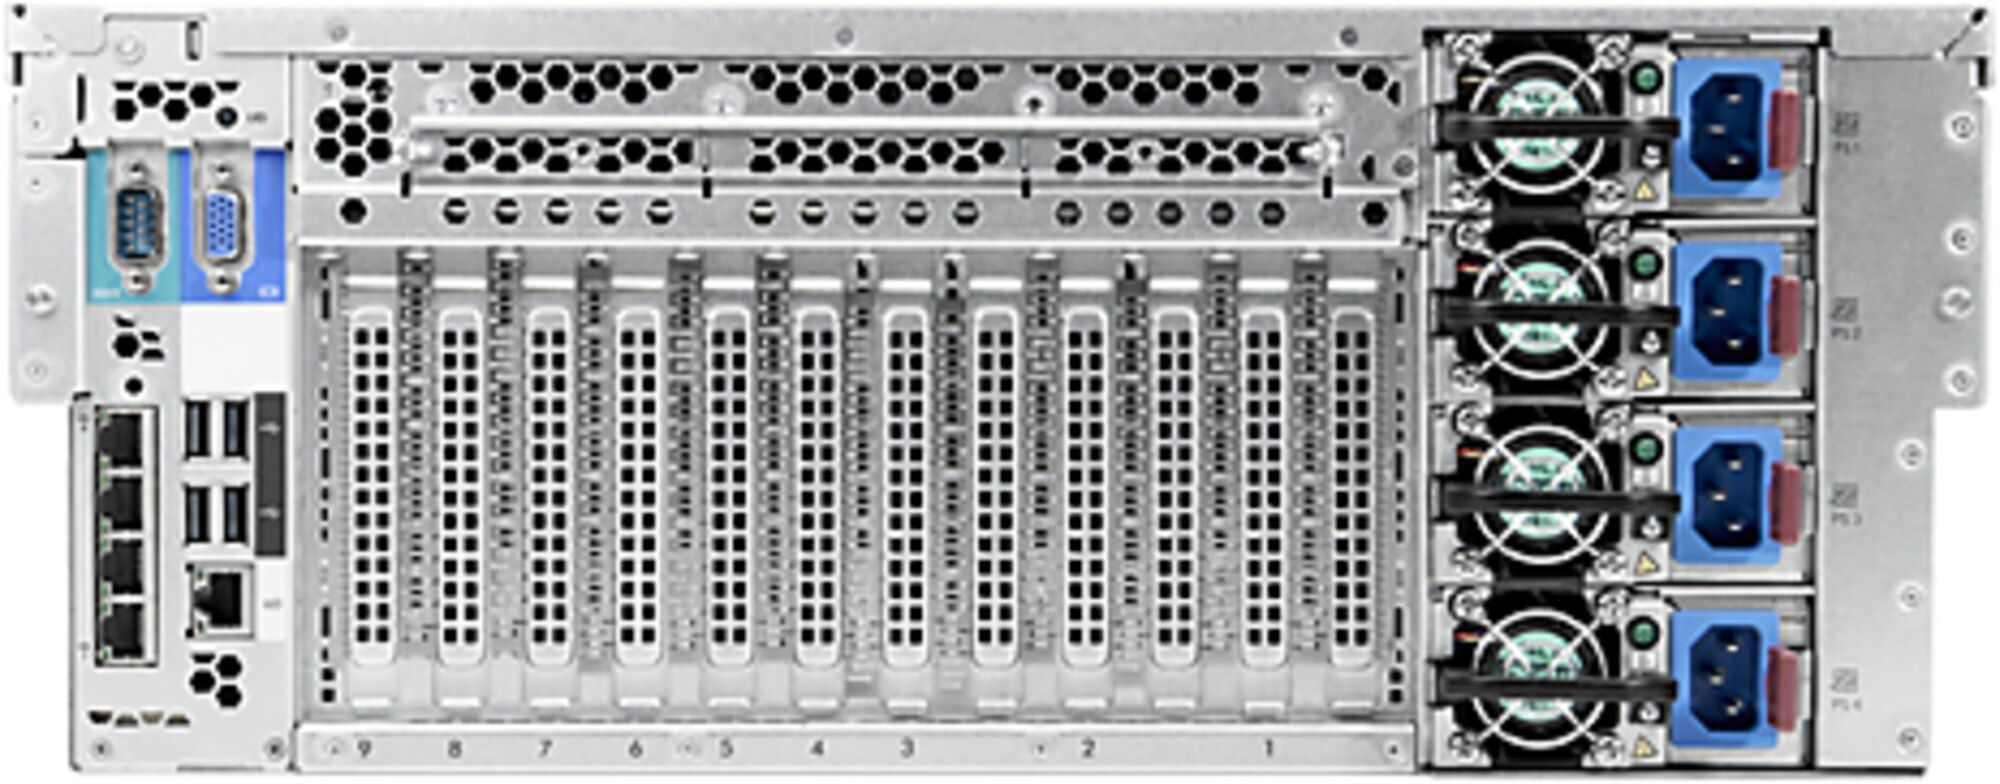 HPE ProLiant DL580 Gen8 Server CPU Render FARM 60 core 120